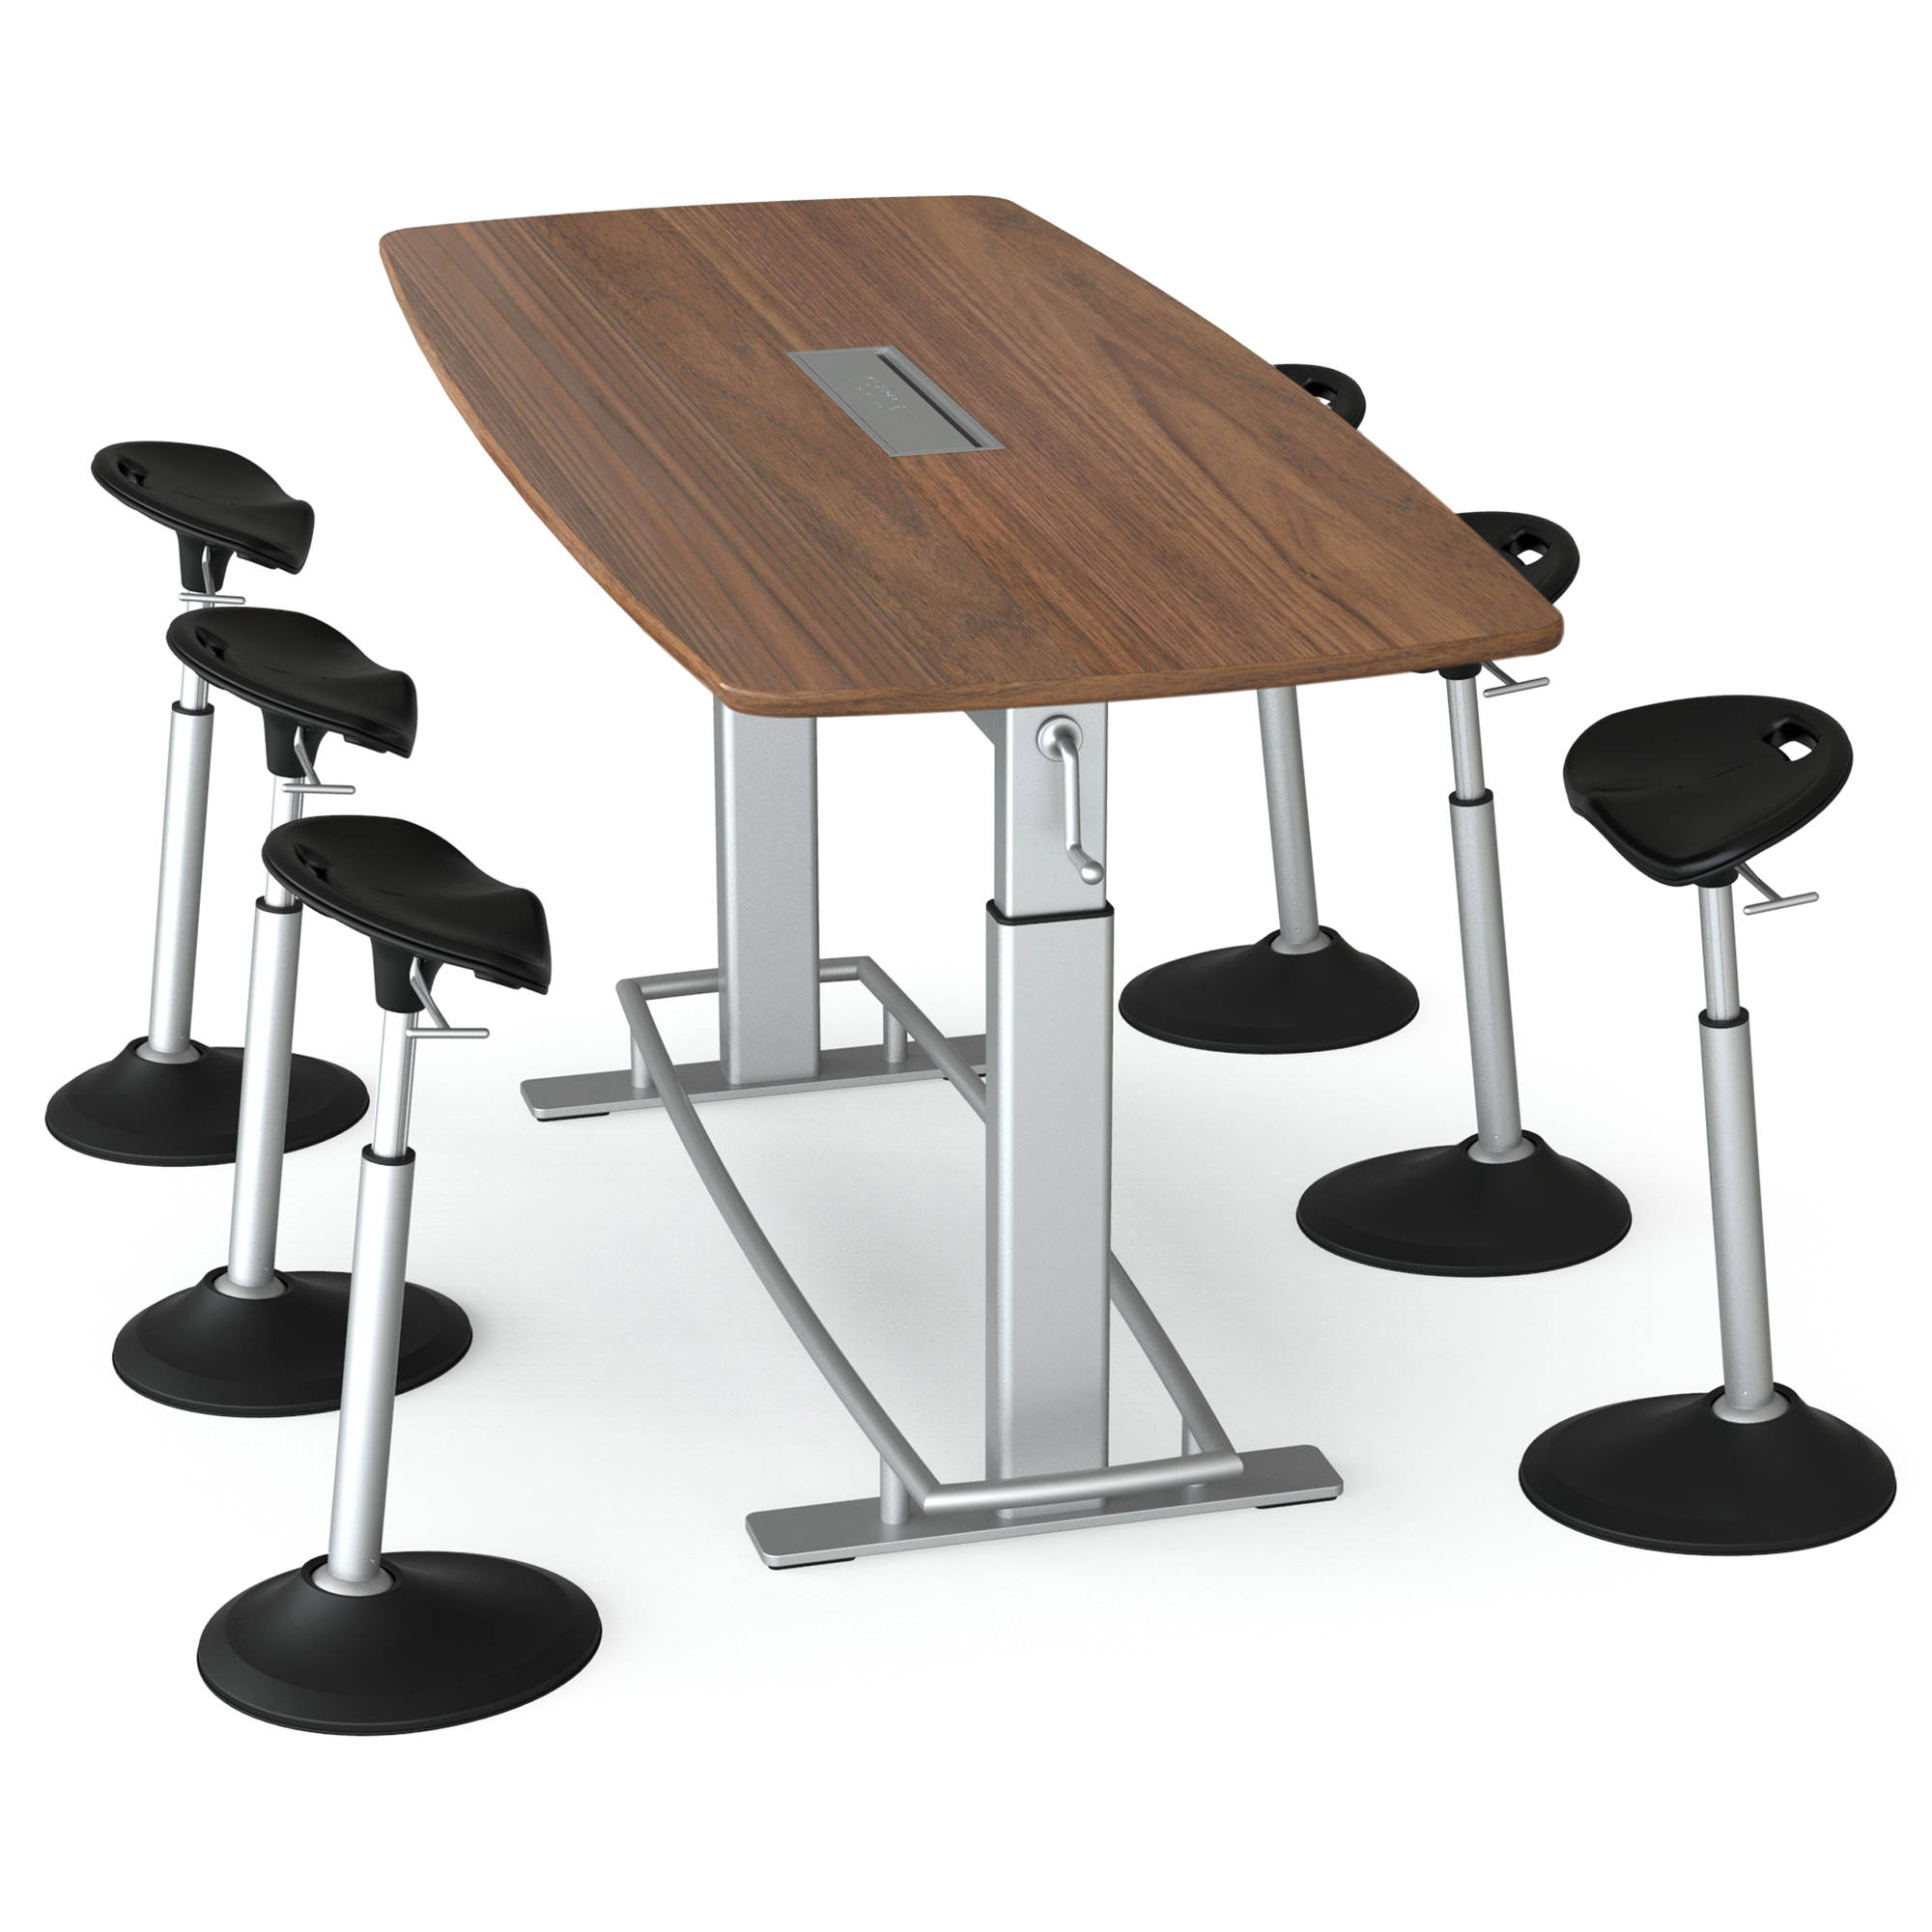 Focal Upright Furniture Confluence 6 Table And Six Mobis Seat Bundle (Black  Walnut Table Top